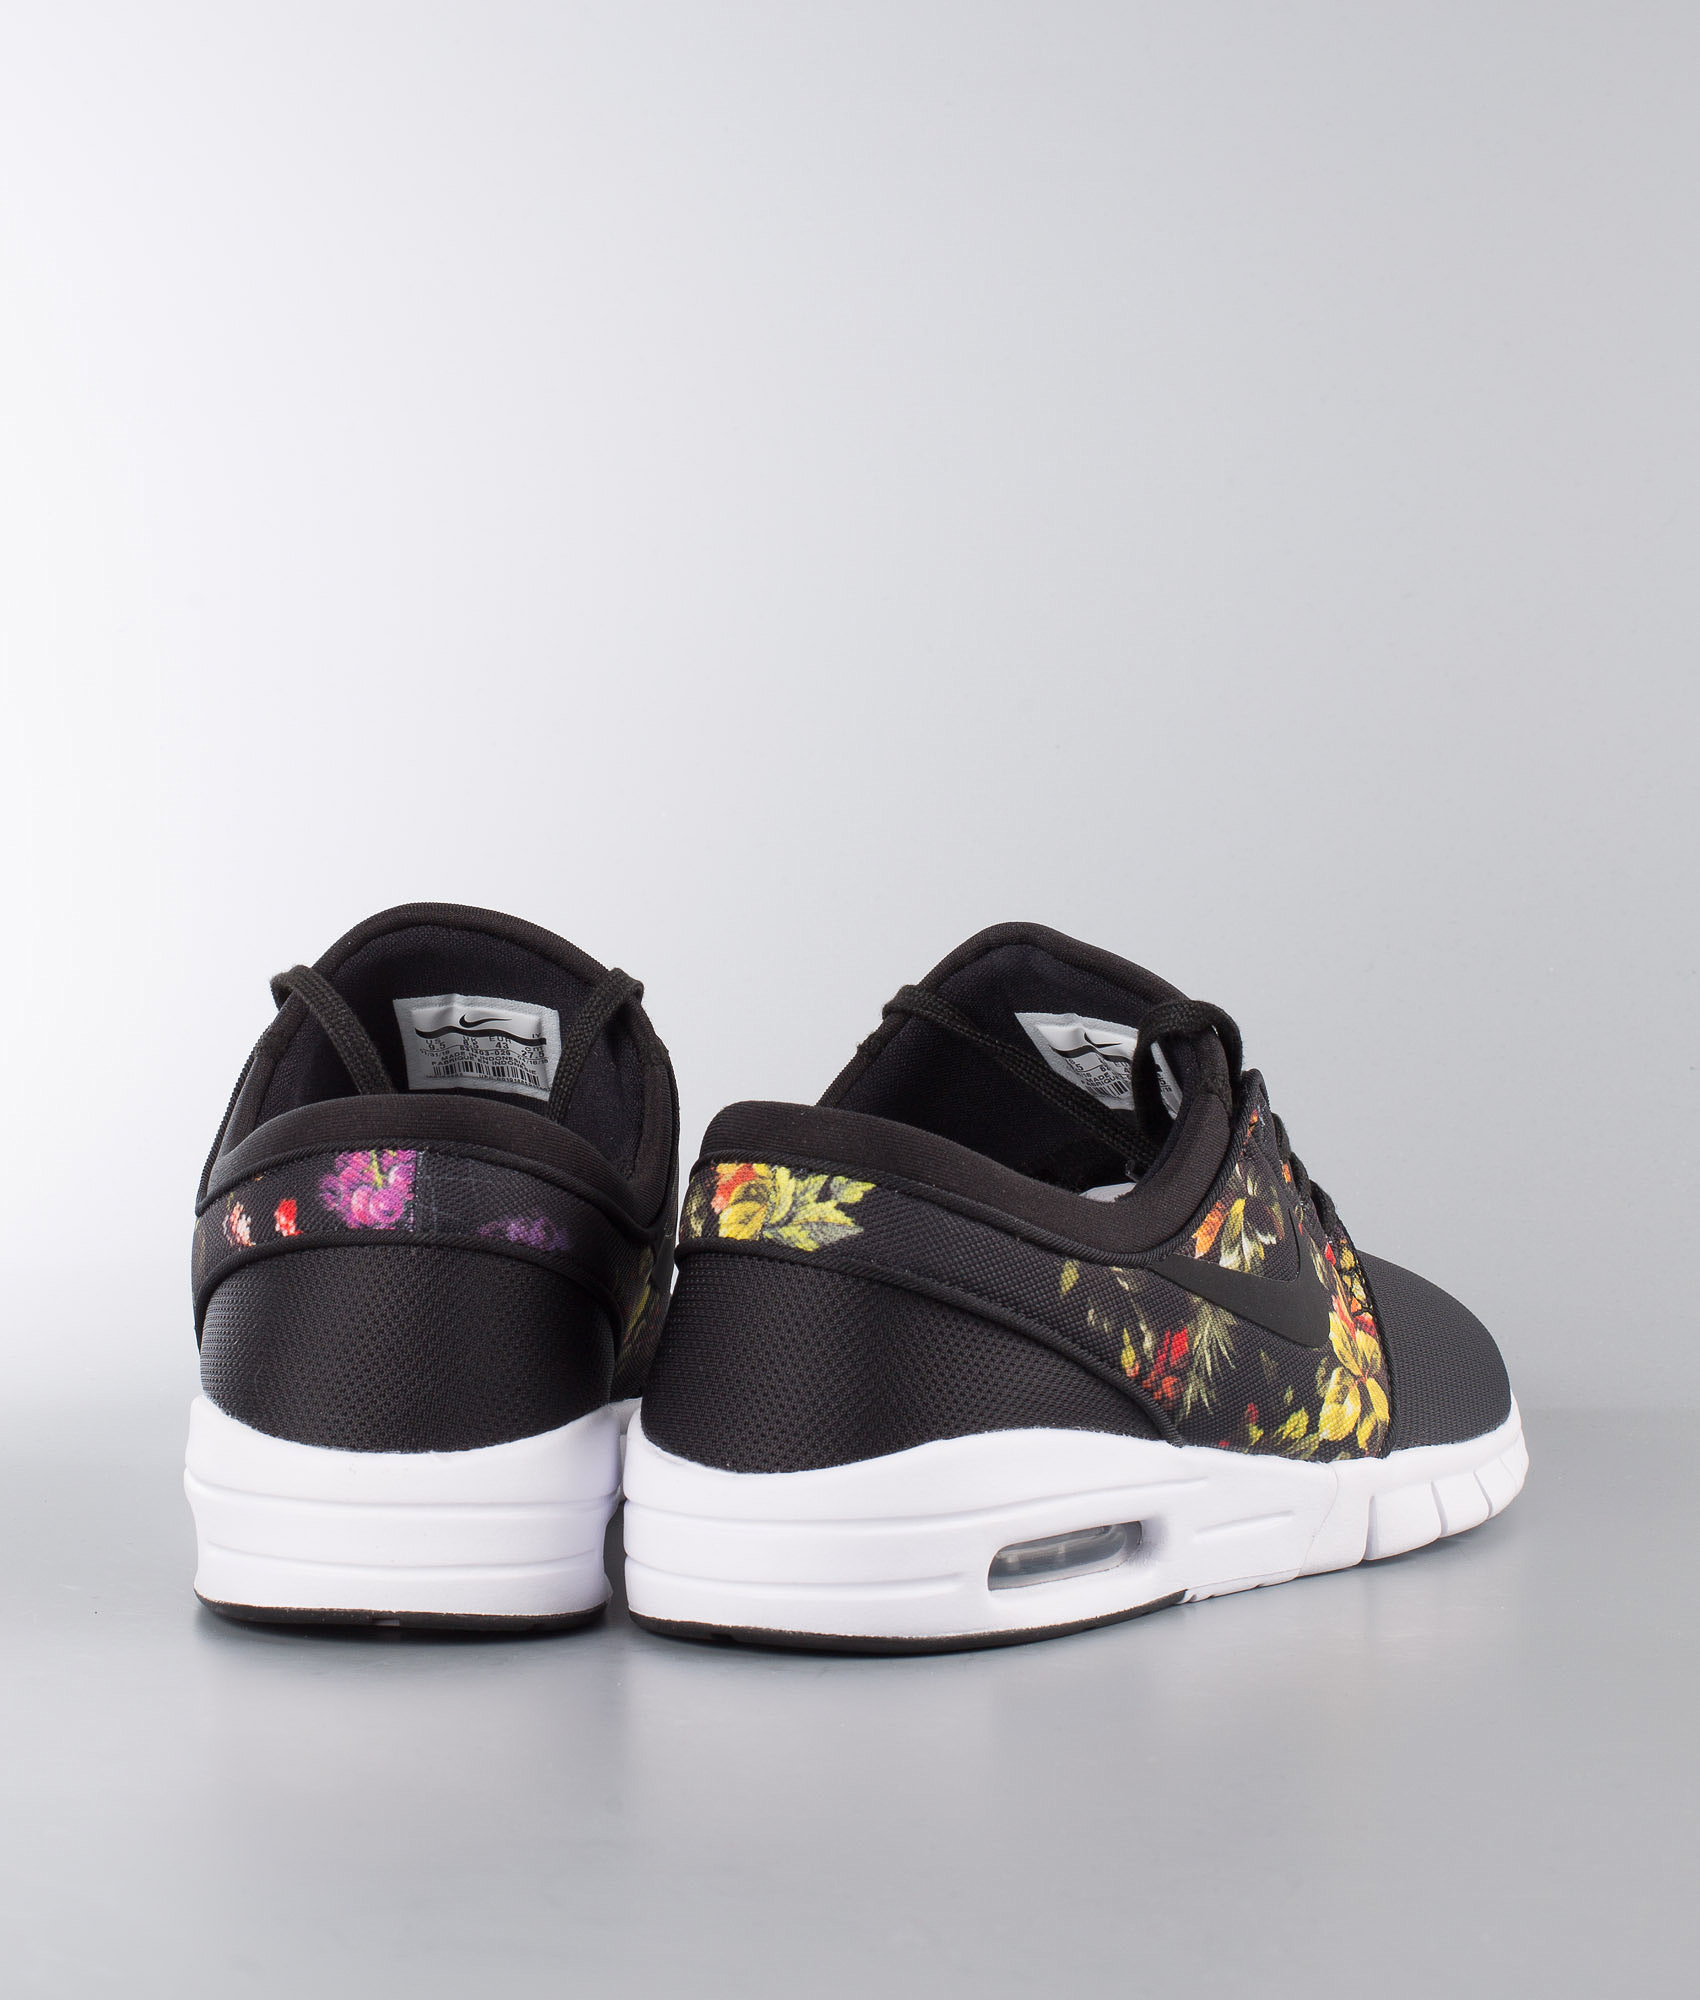 3b7c577899 Nike Stefan Janoski Max Shoes Black/Black-Multi-Color - Ridestore.com